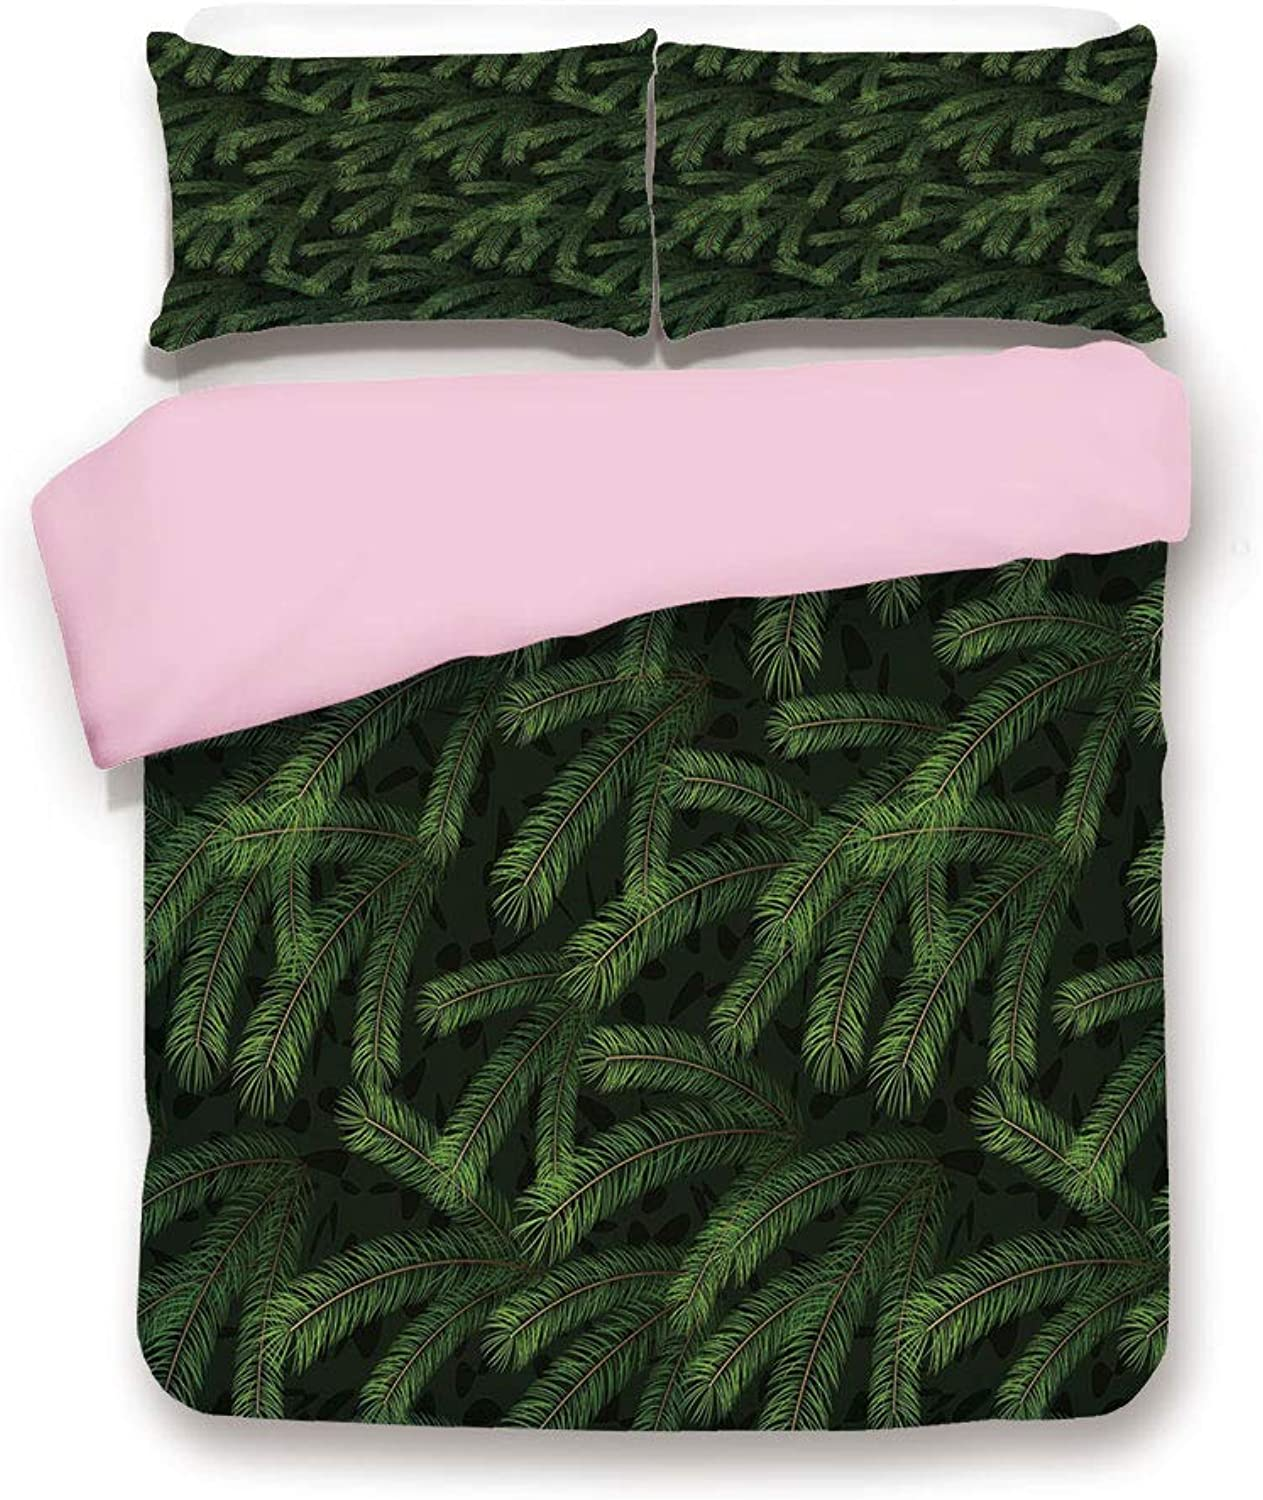 Pink Duvet Cover Set/Twin Size/Vivid Fir Pine Branches Trees Coniferous Trees Evergreen Nature Forest Decorative/Decorative 3 Piece Bedding Set with 2 Pillow Sham/Best Gift for Girls Women/Green Dark